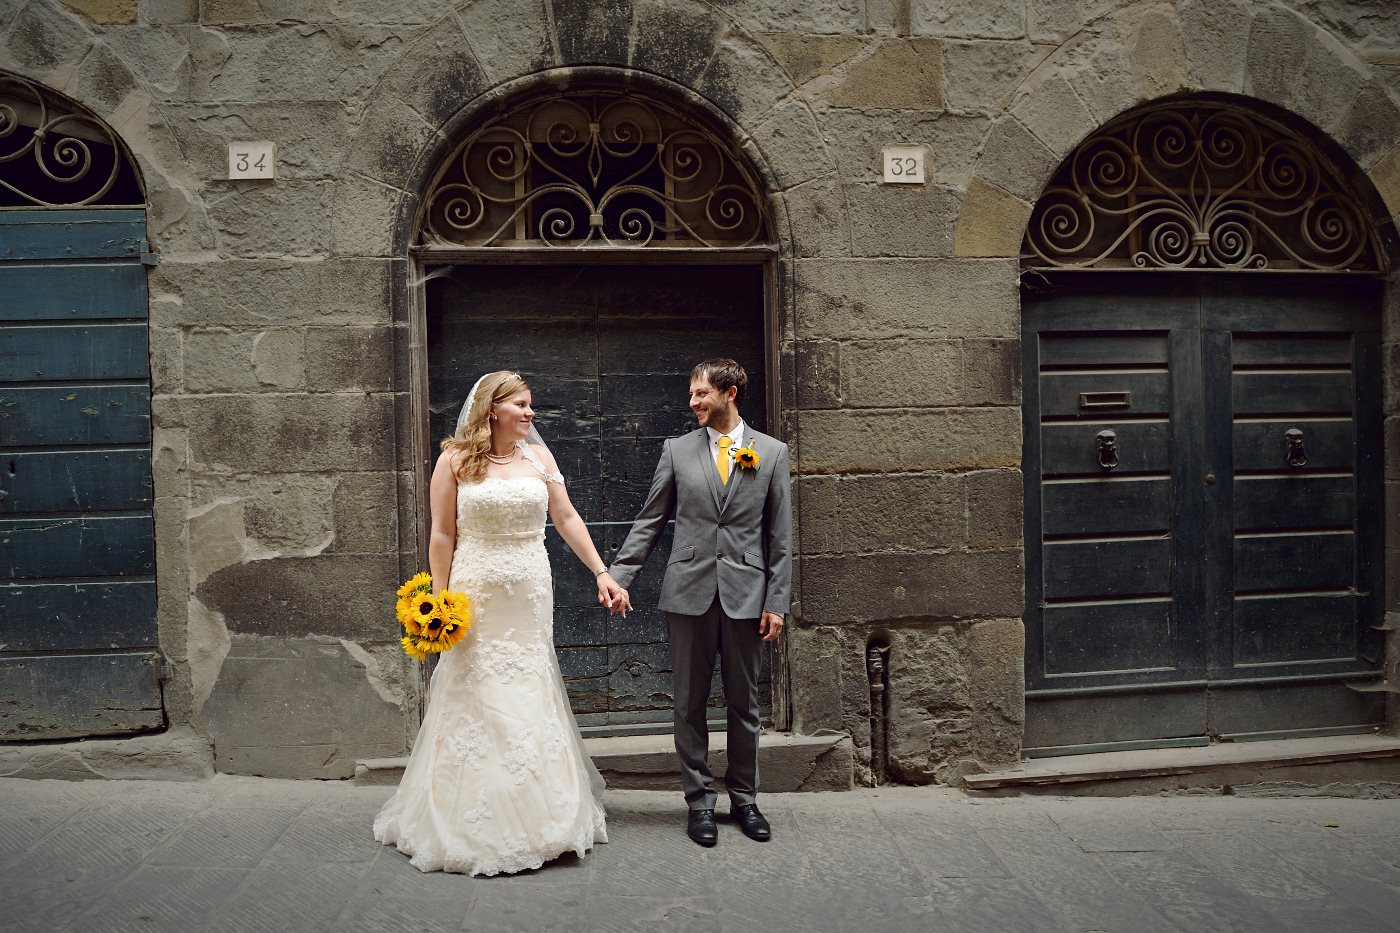 wedding photos cortona_14.jpg